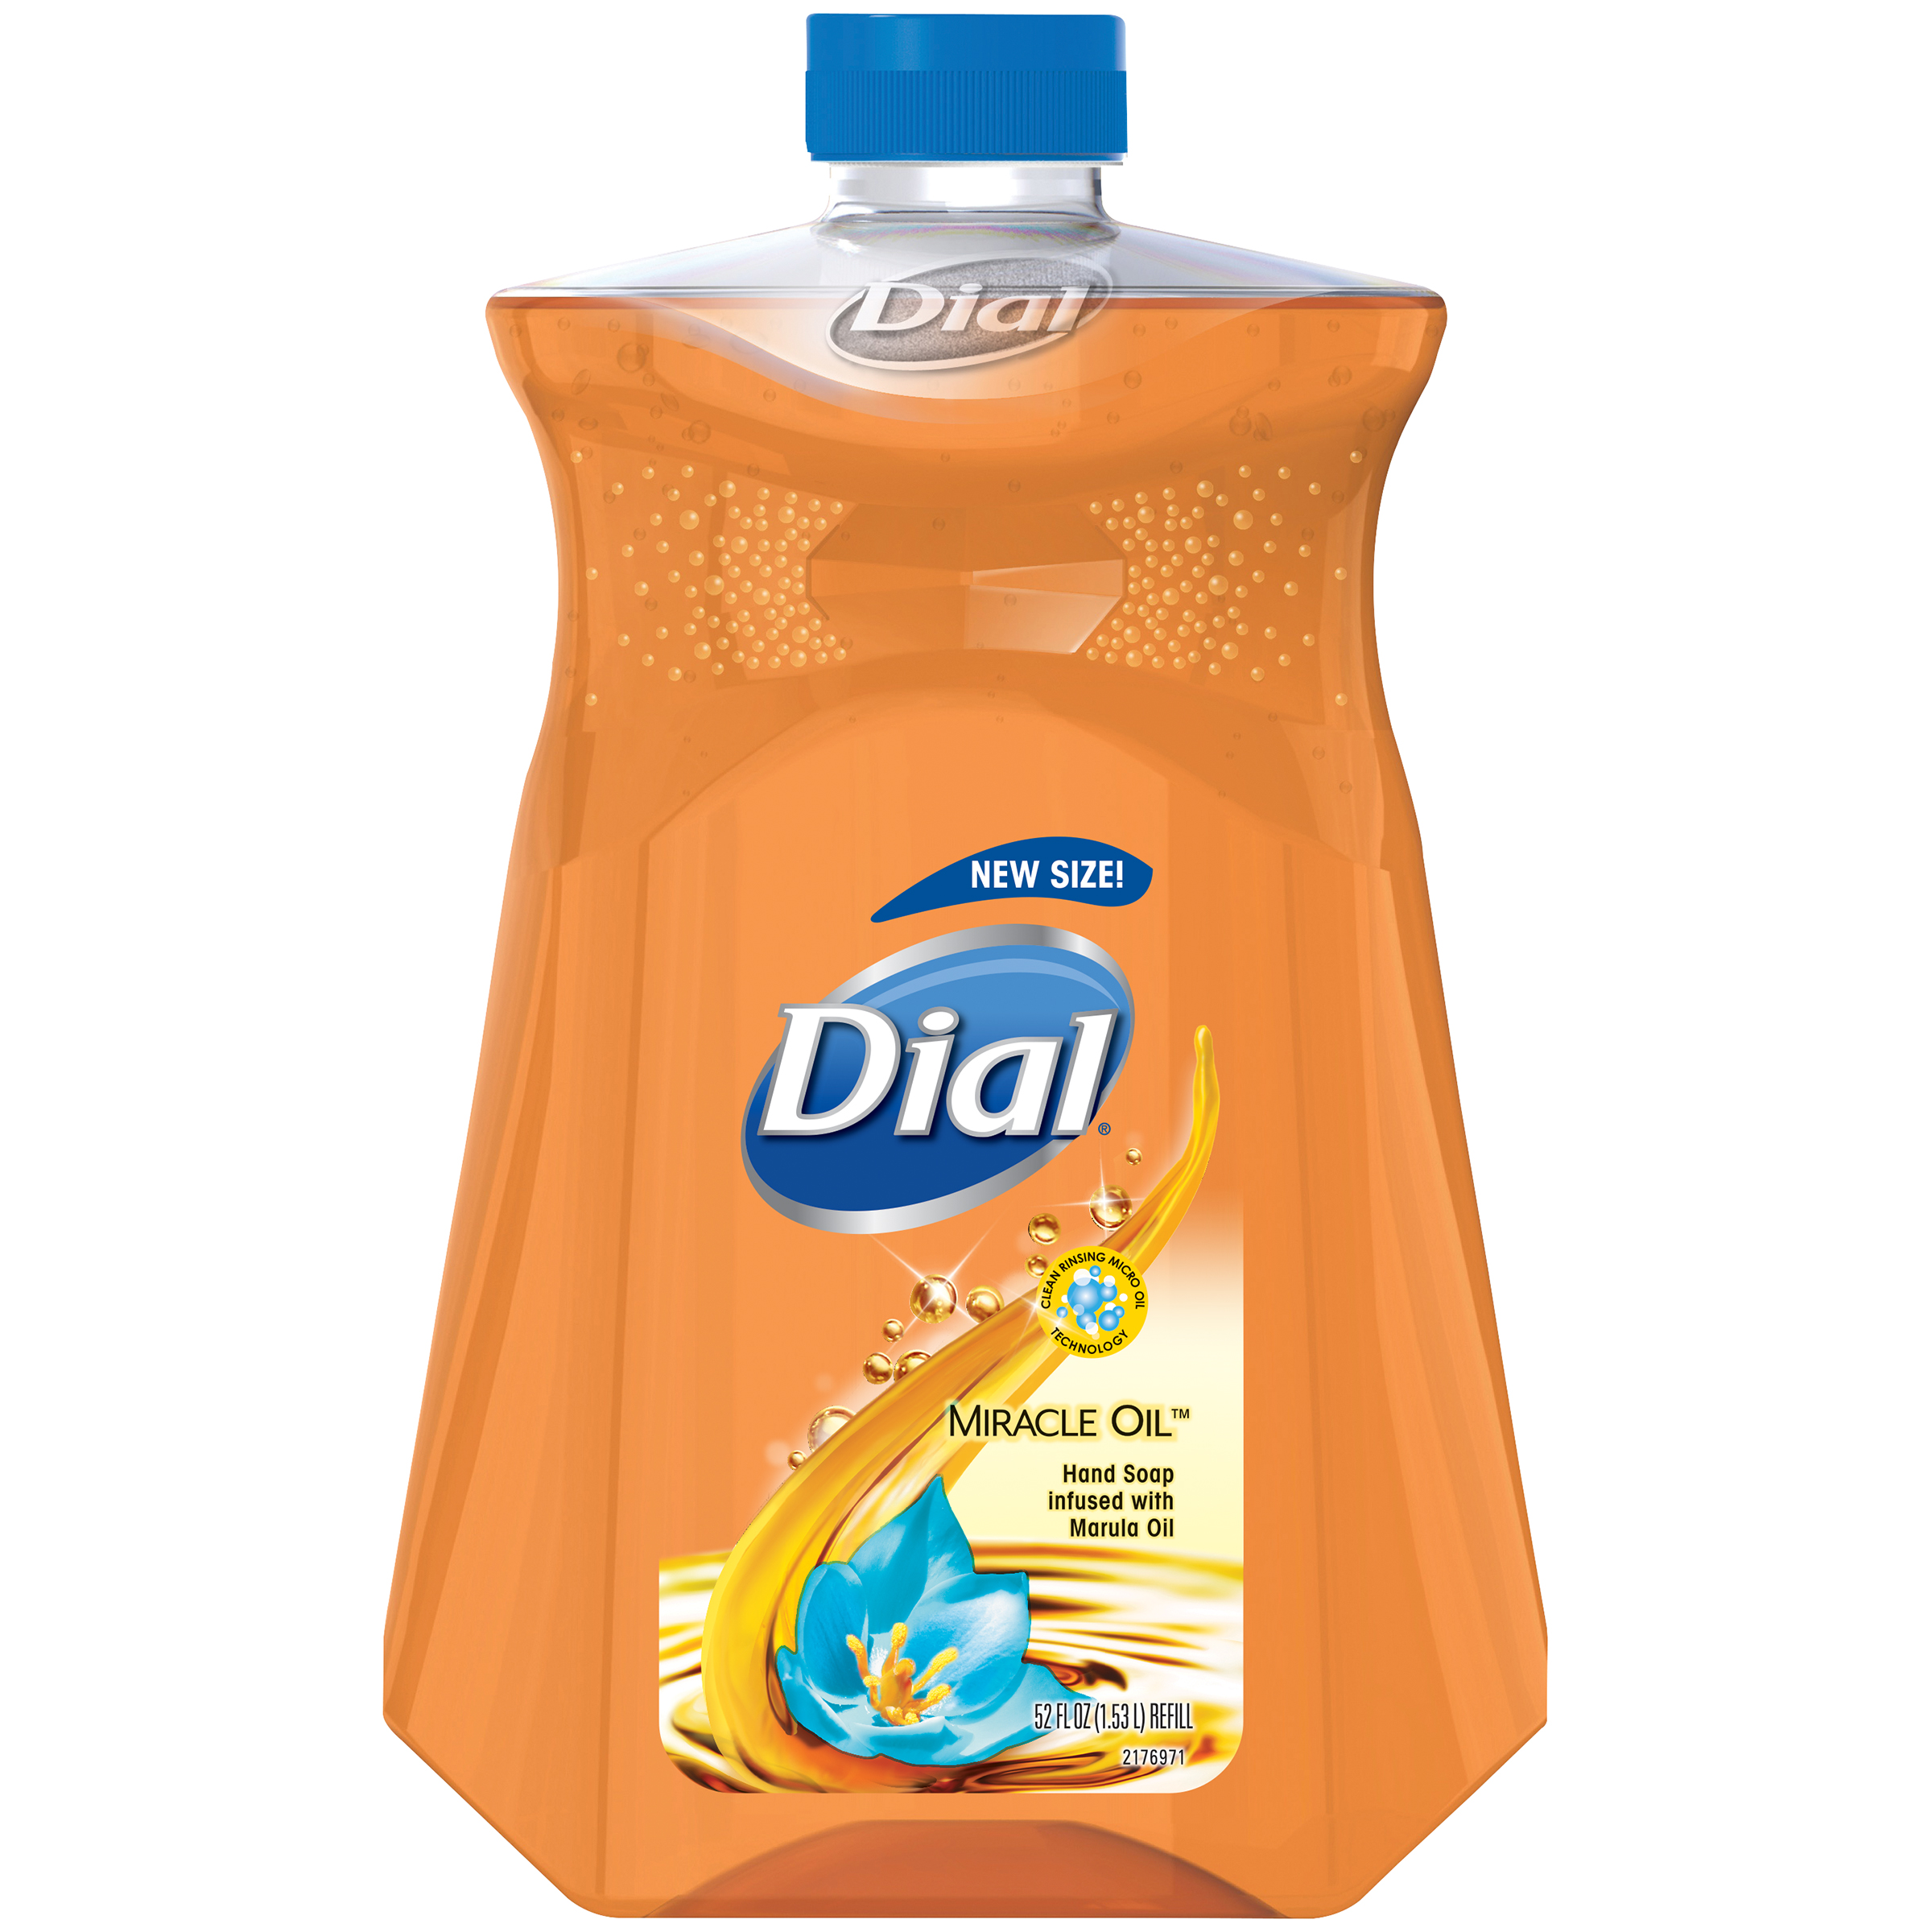 Dial Liquid Hand Soap with Moisturizer Refill, Miracle Oil Marula, 52 Ounce